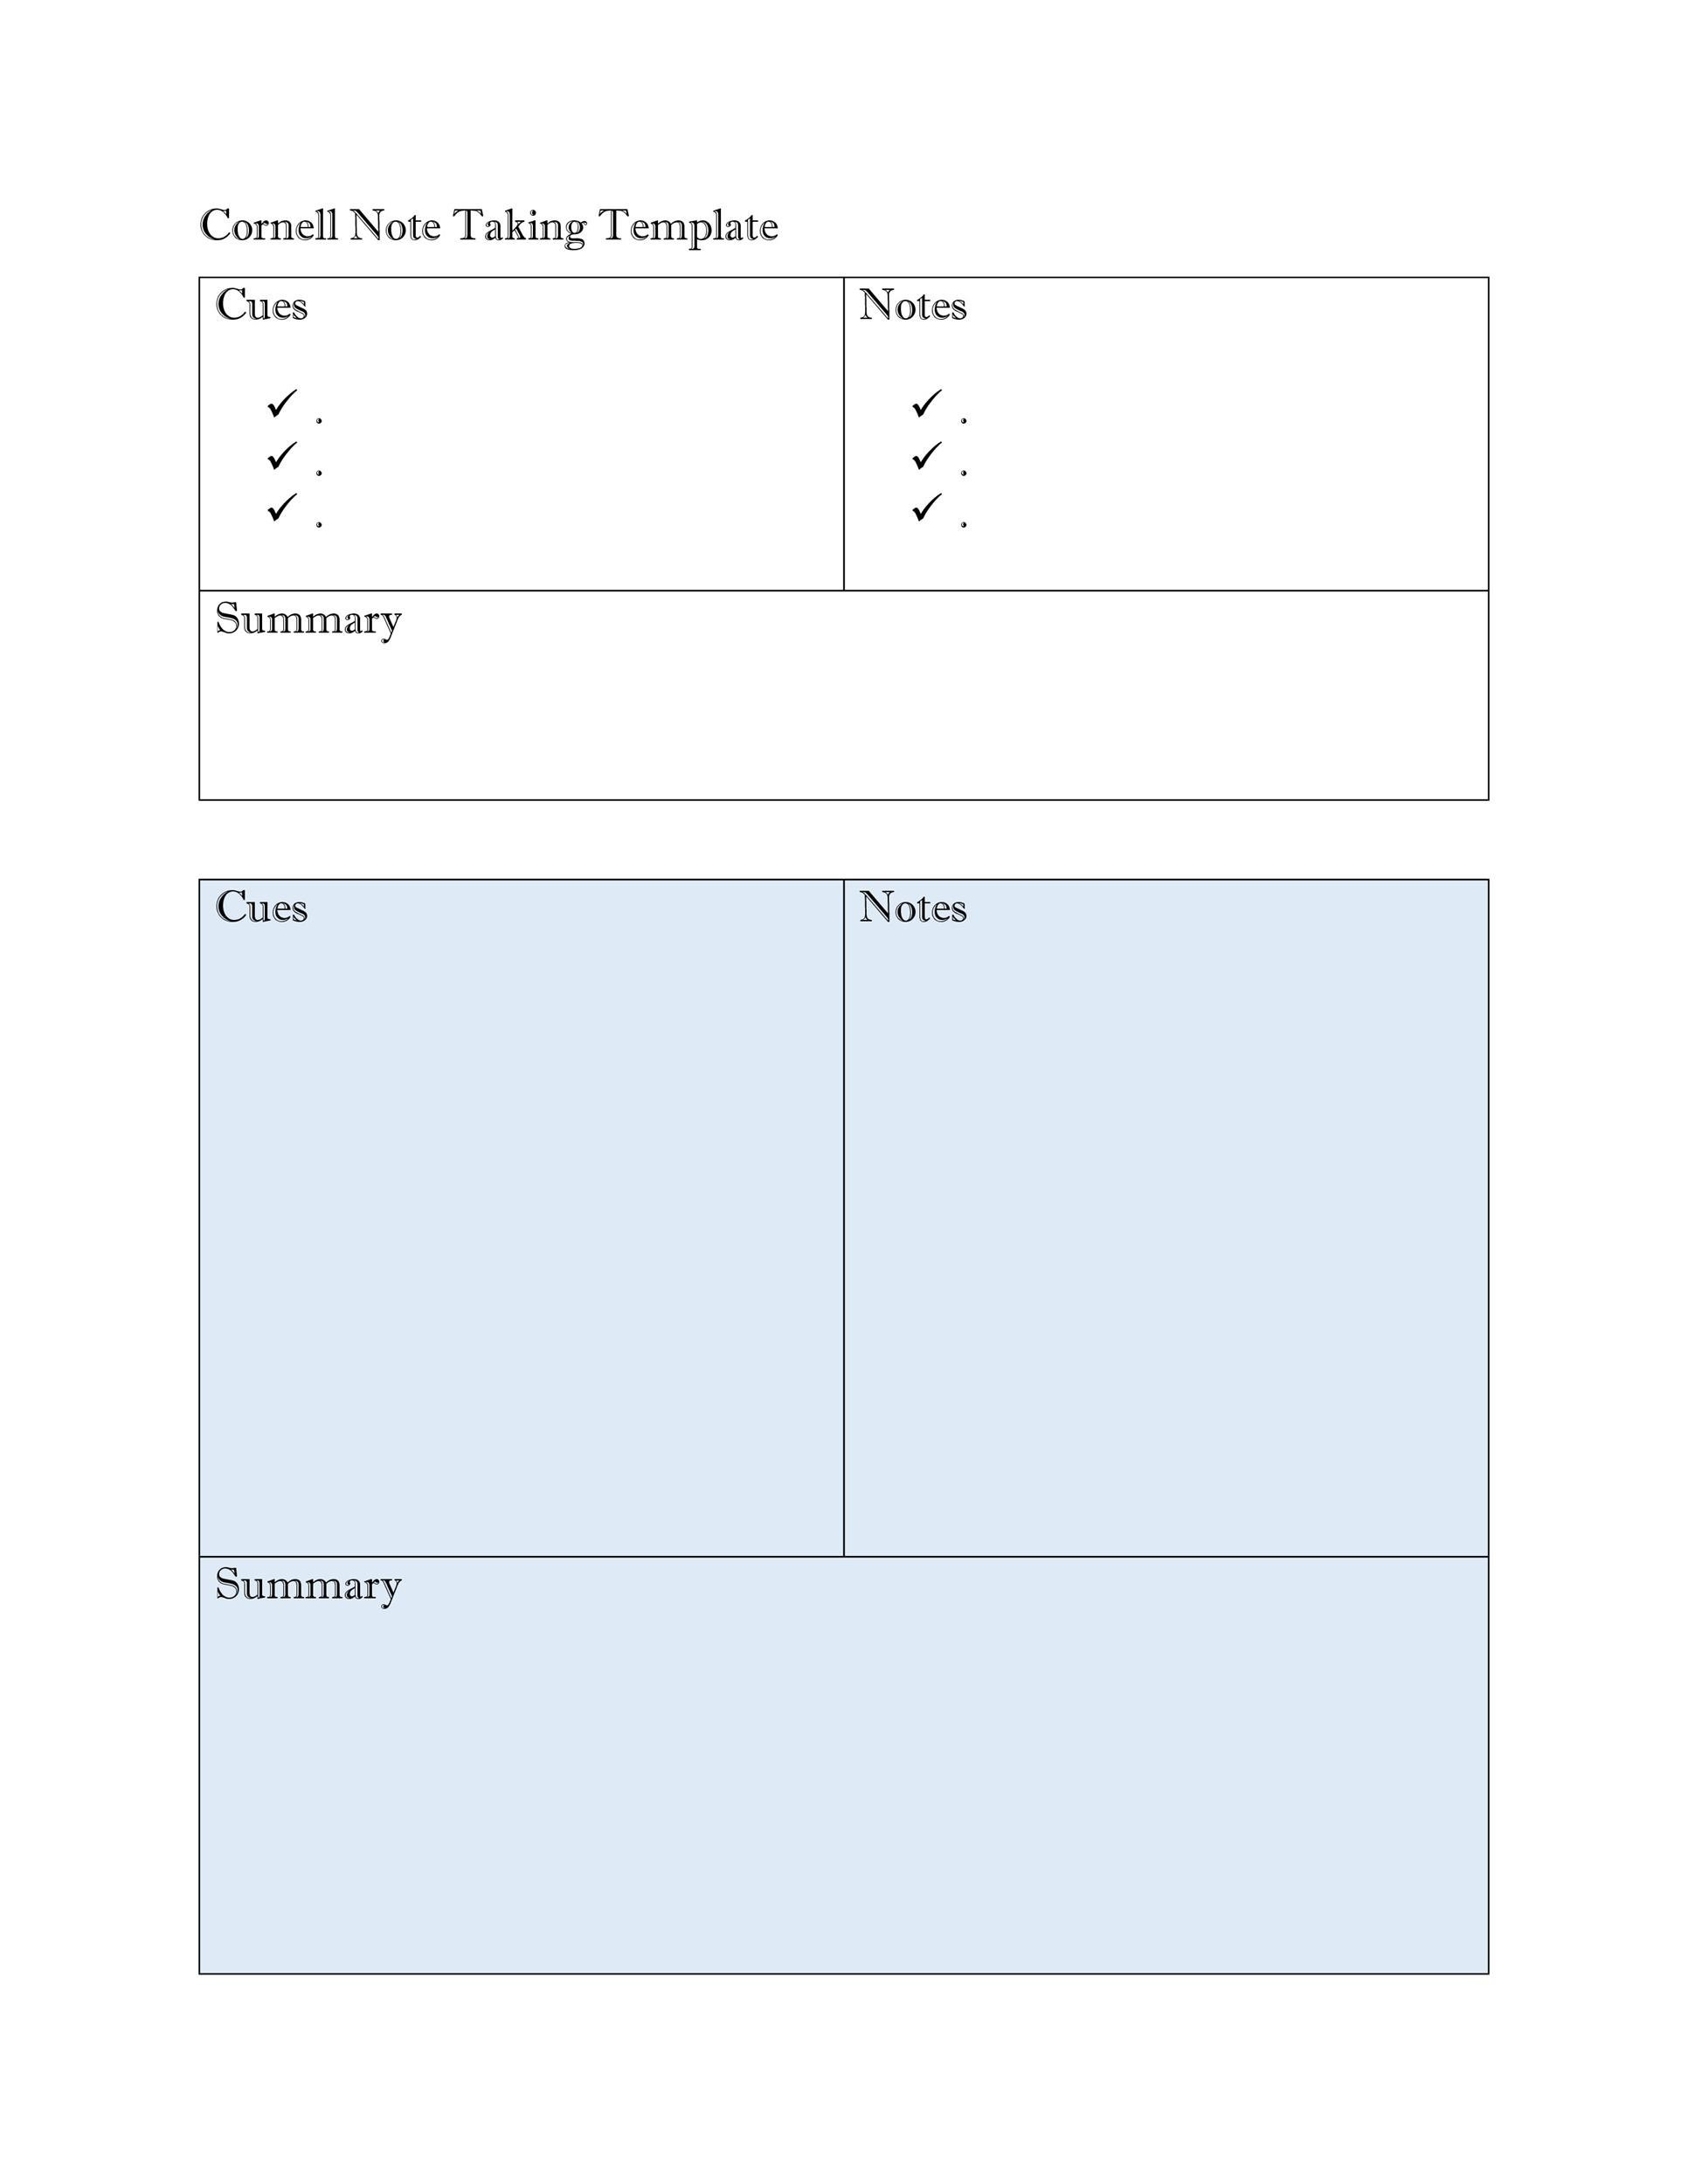 Note Taking Template - Neptun